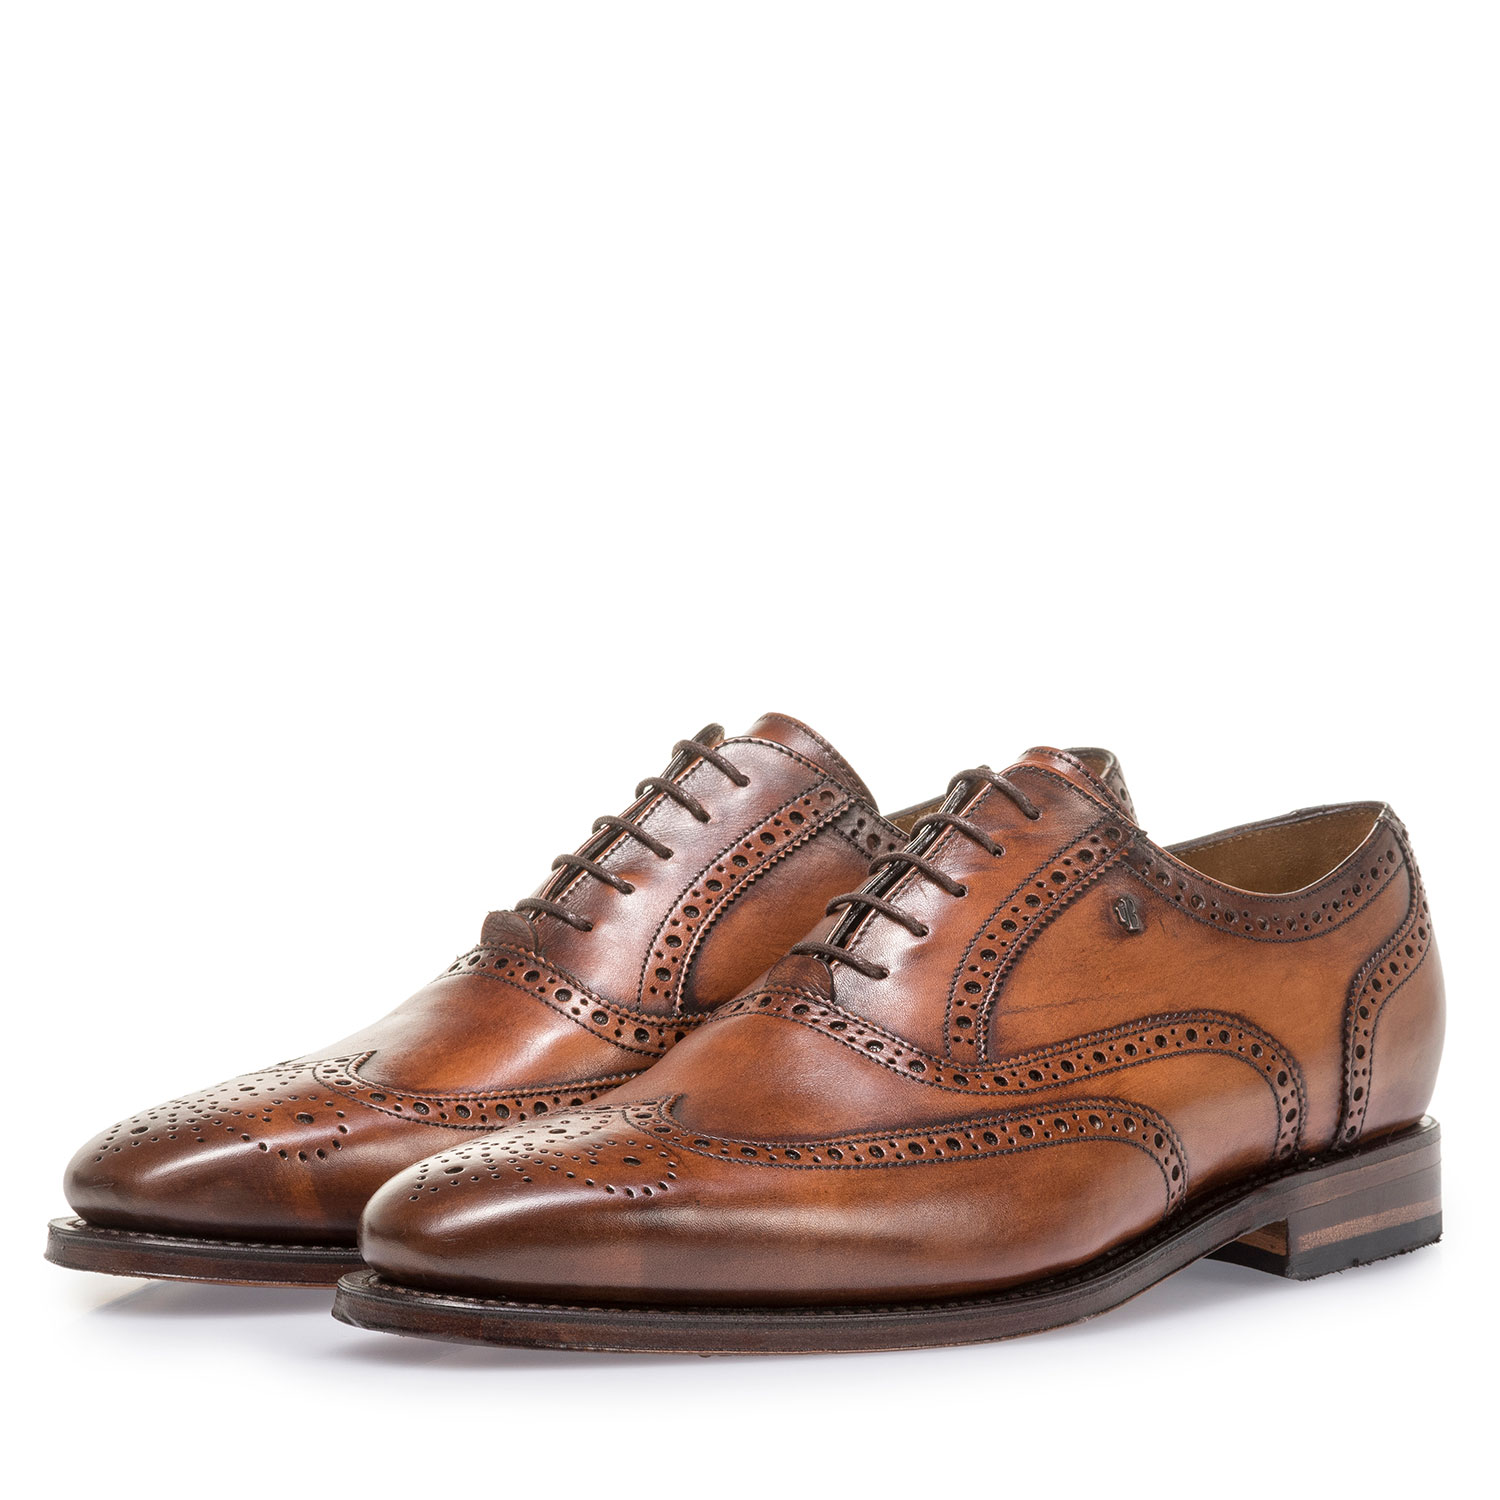 19125/00 - Dark cognac-coloured calf leather brogue